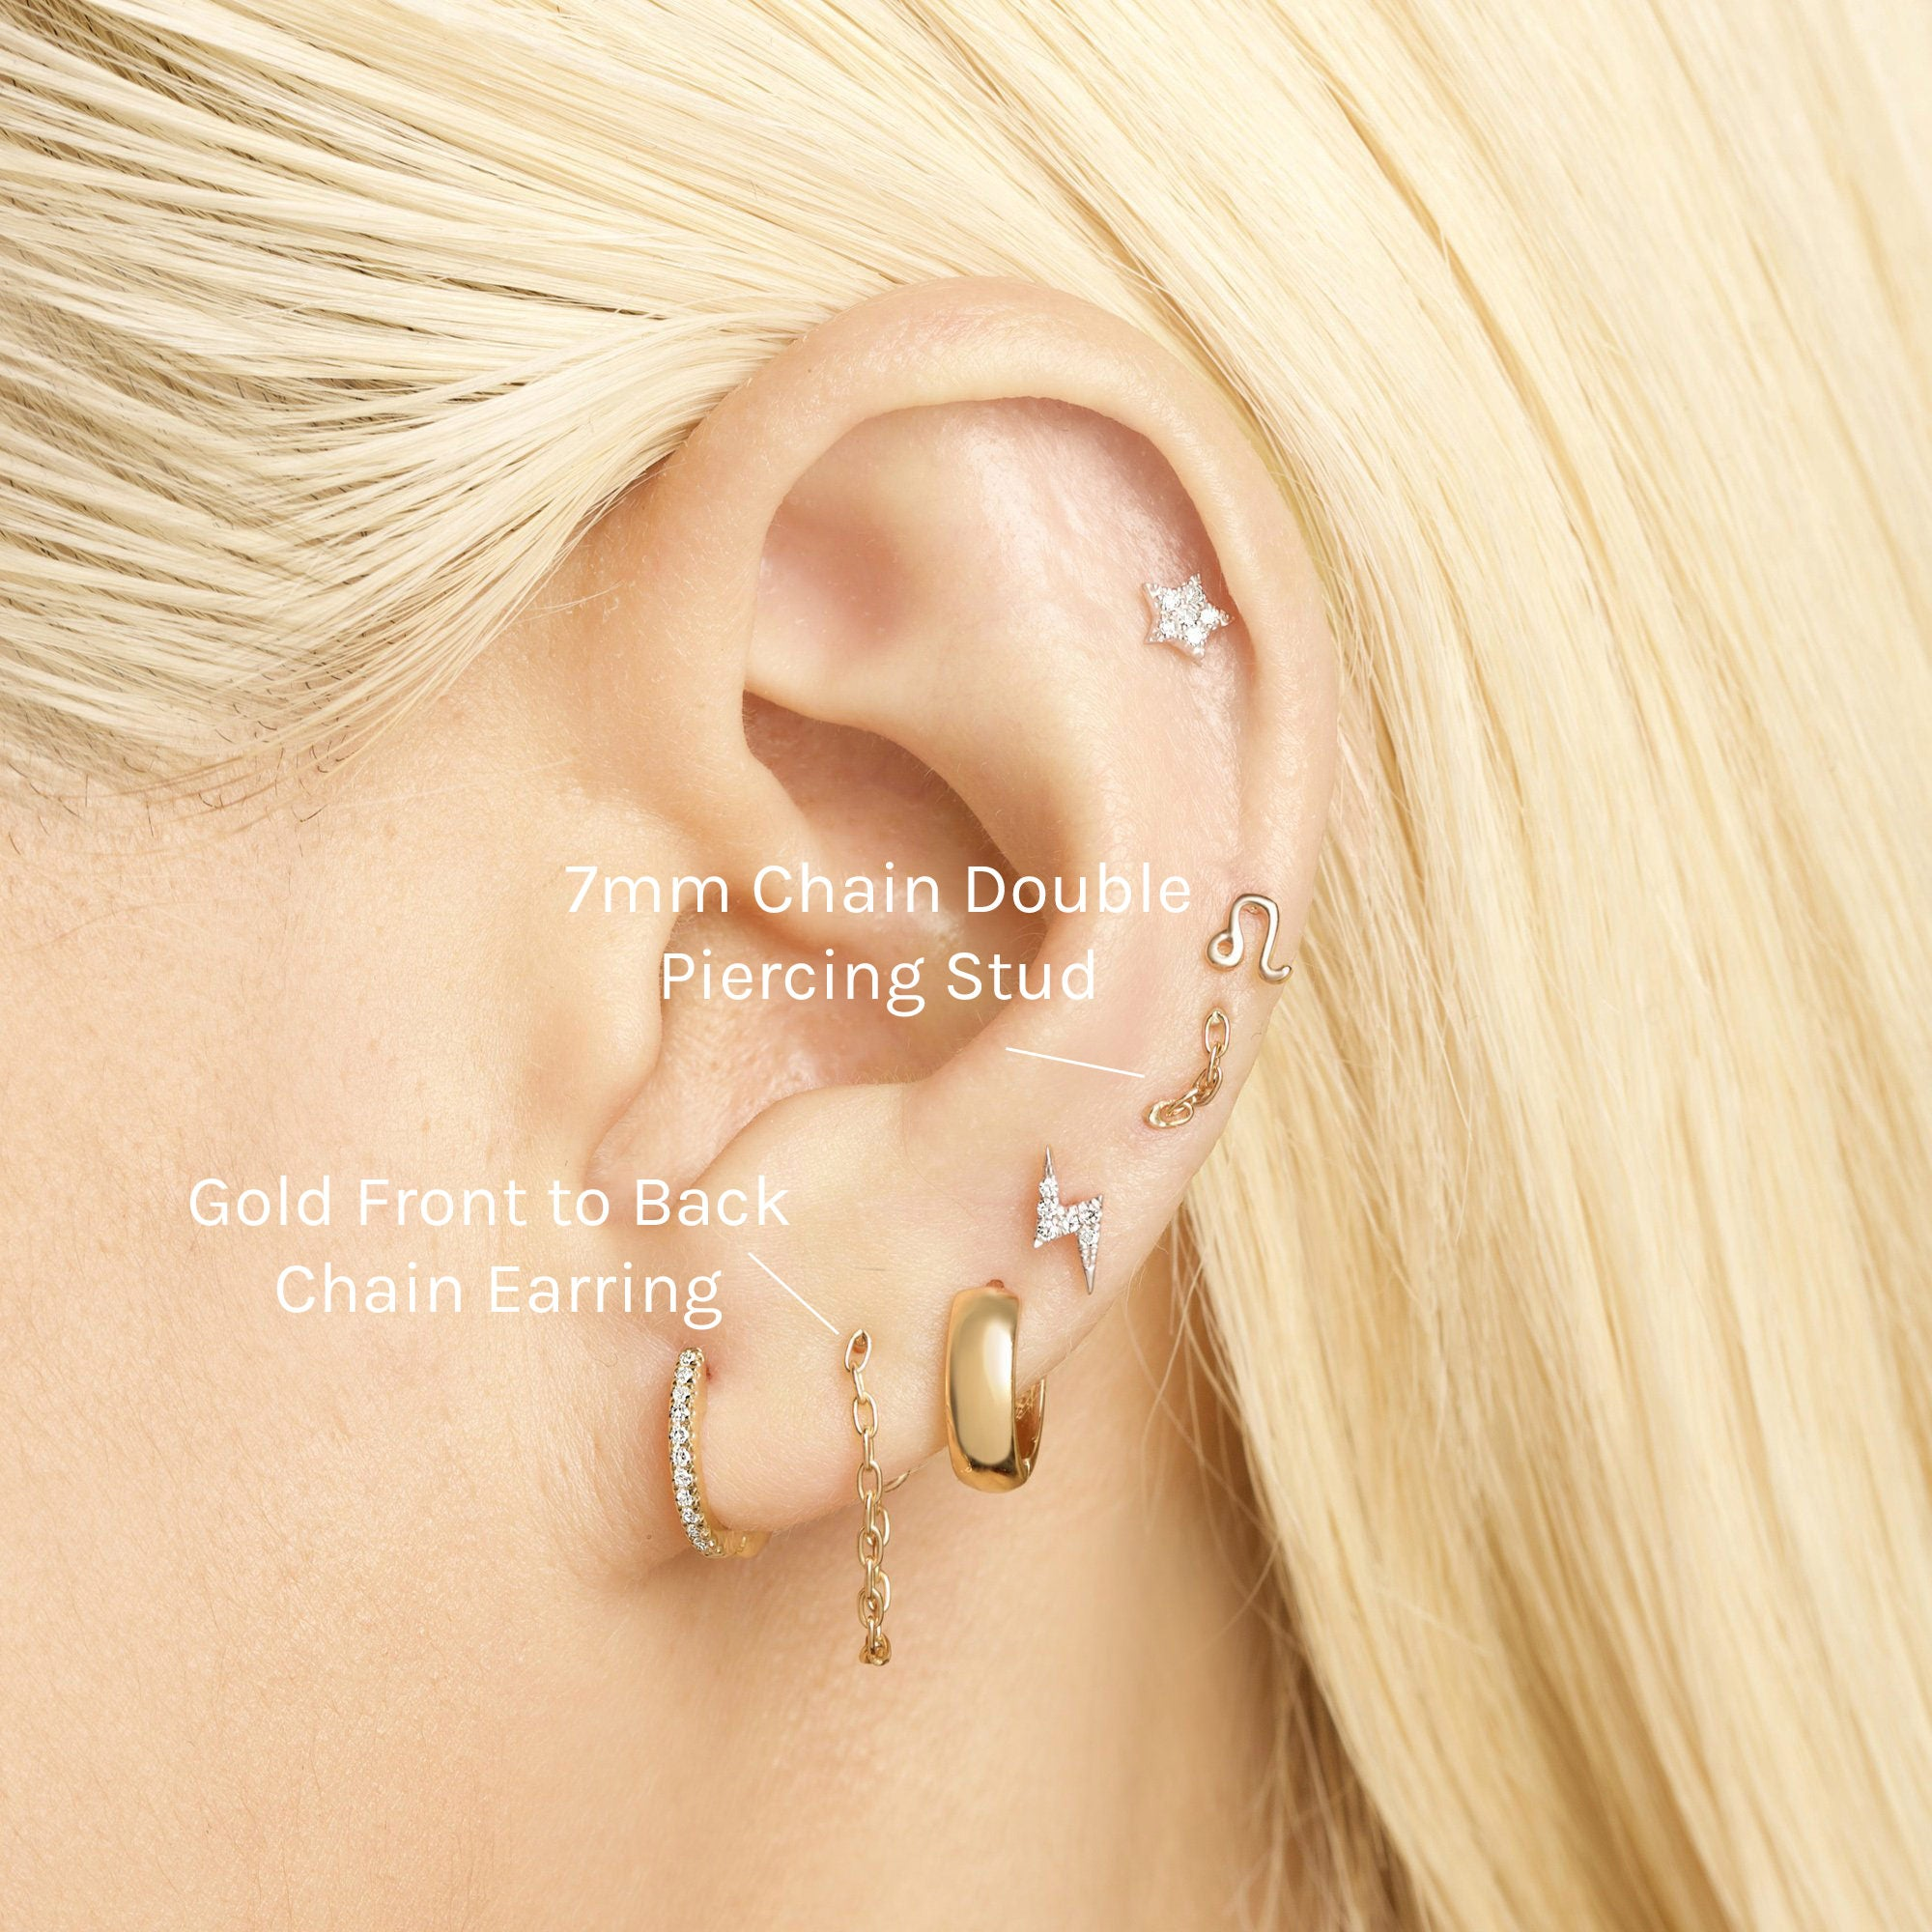 Gold Front To Back Chain Earring